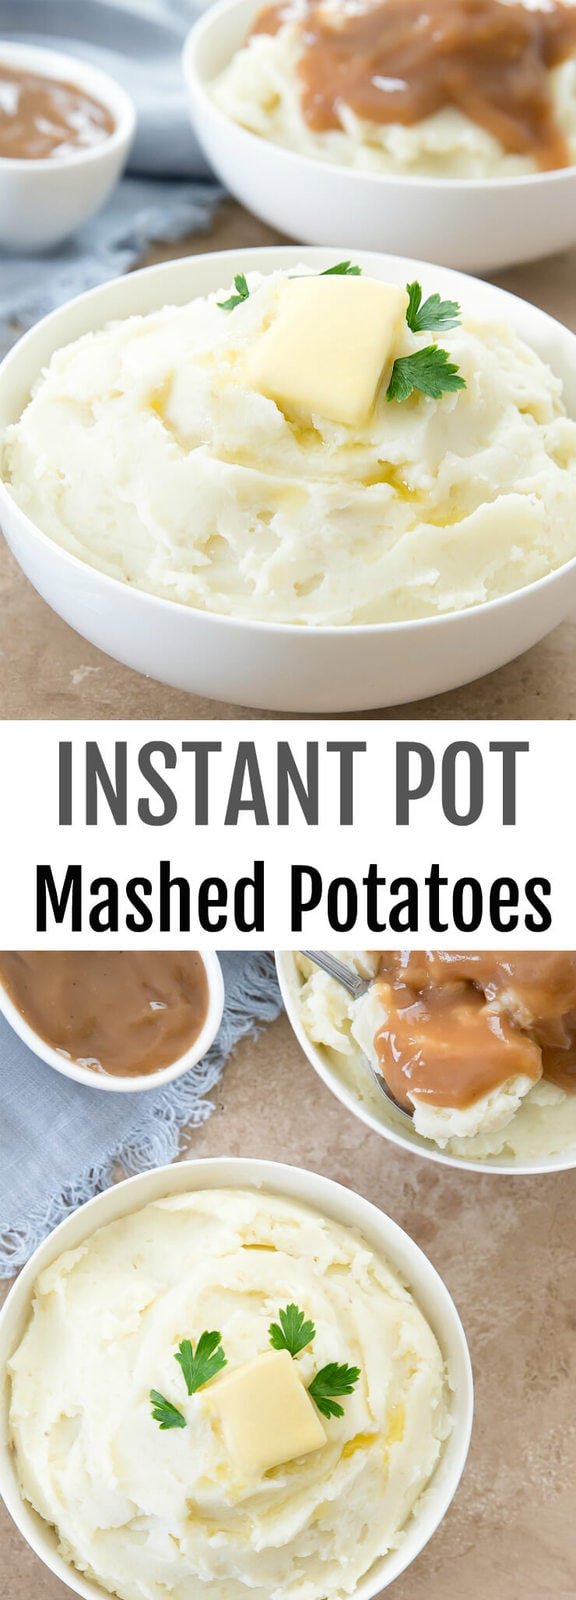 Instant Pot Mashed Potatoes. Creamy, fluffy mashed potatoes made easier with the Instant Pot. Perfect for Thanksgiving!